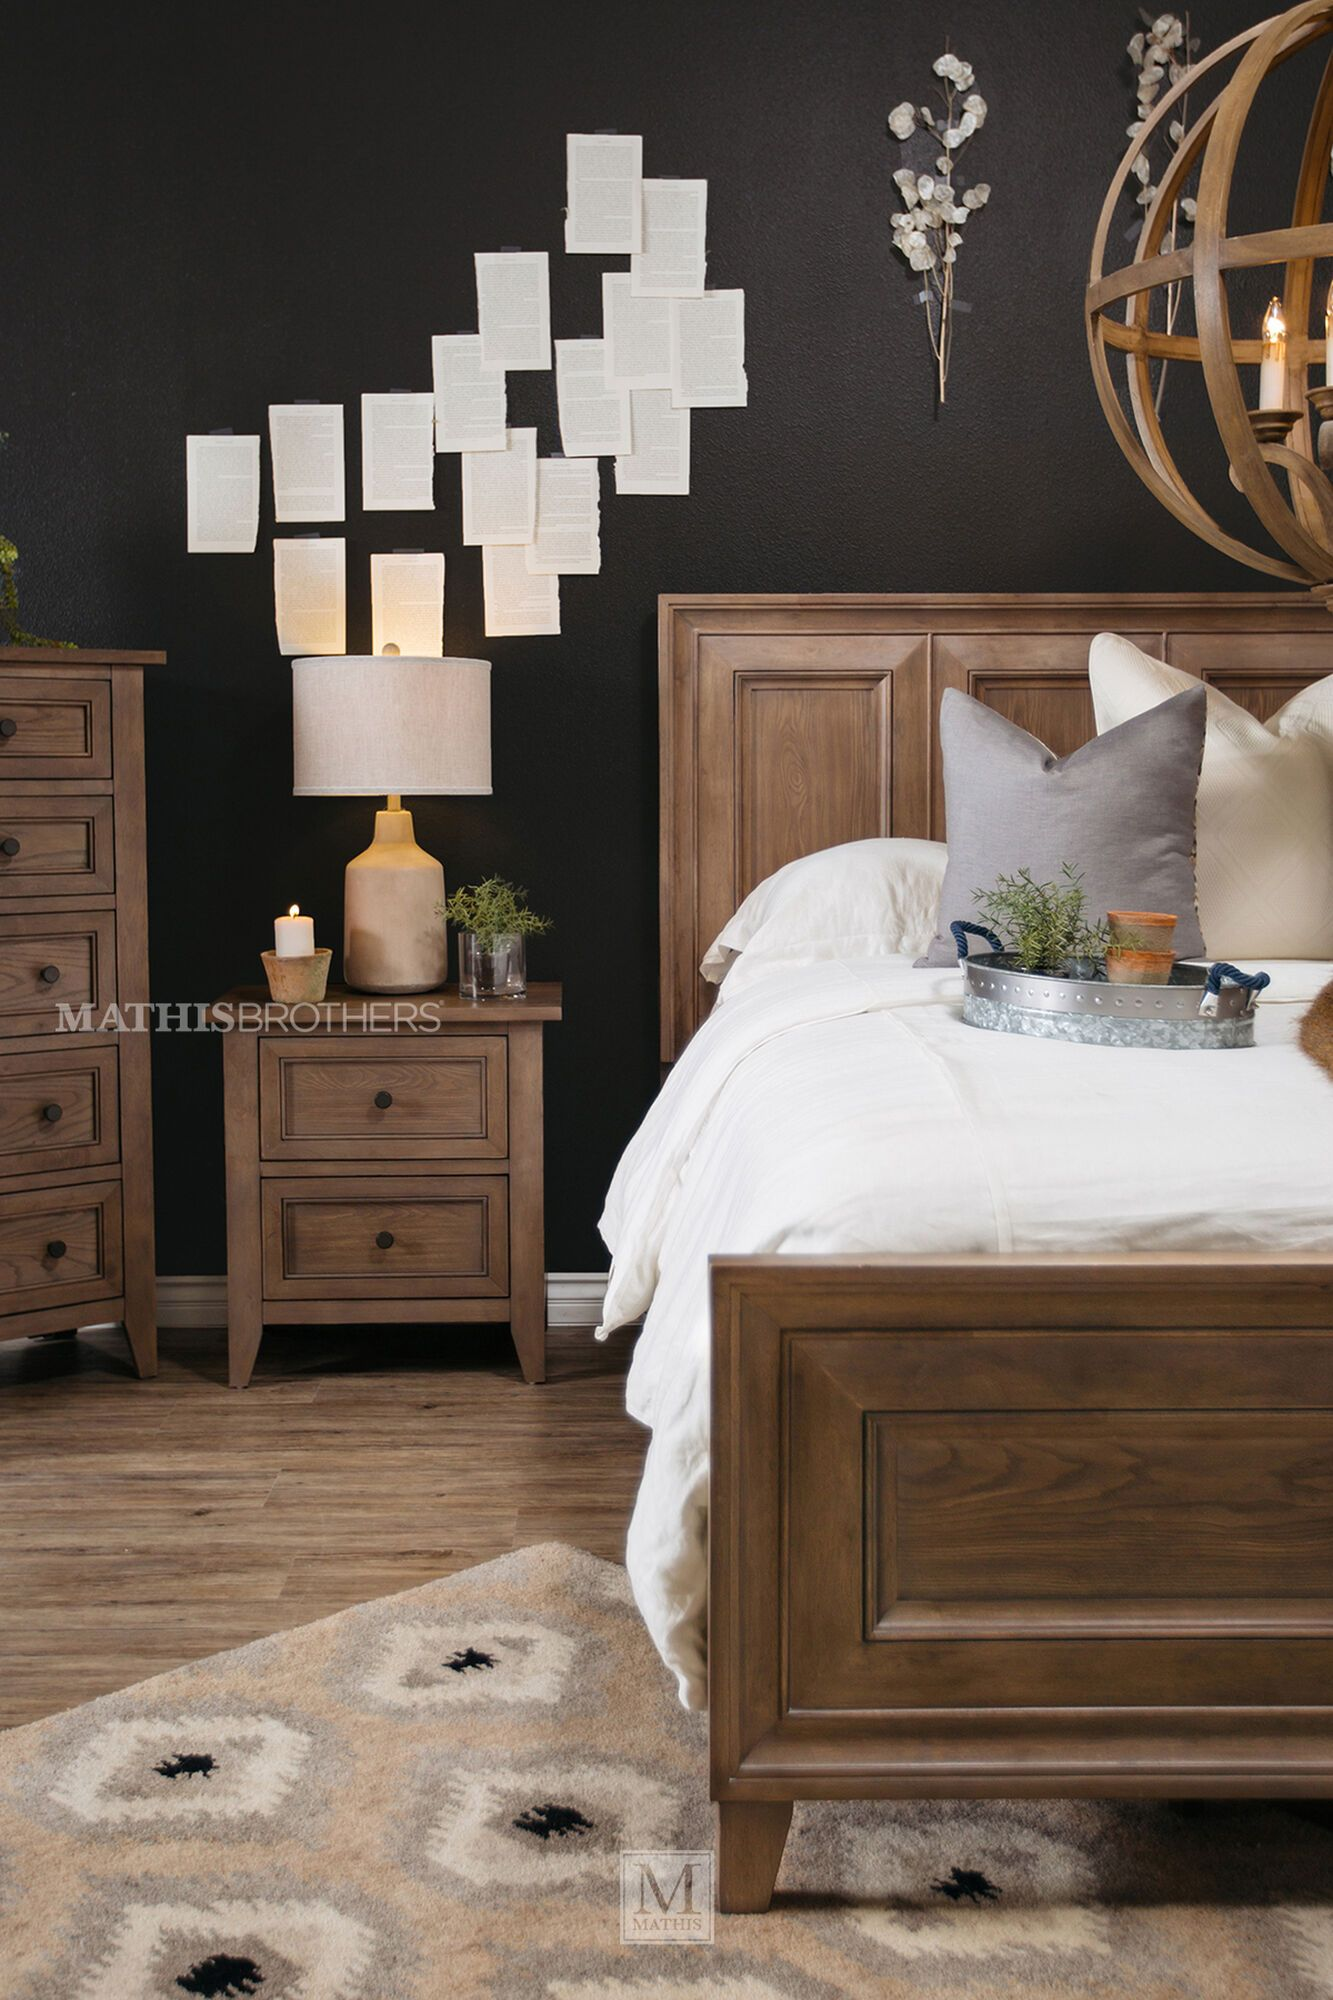 59 Quot Traditional Framed Panel Bed In Driftwood Mathis